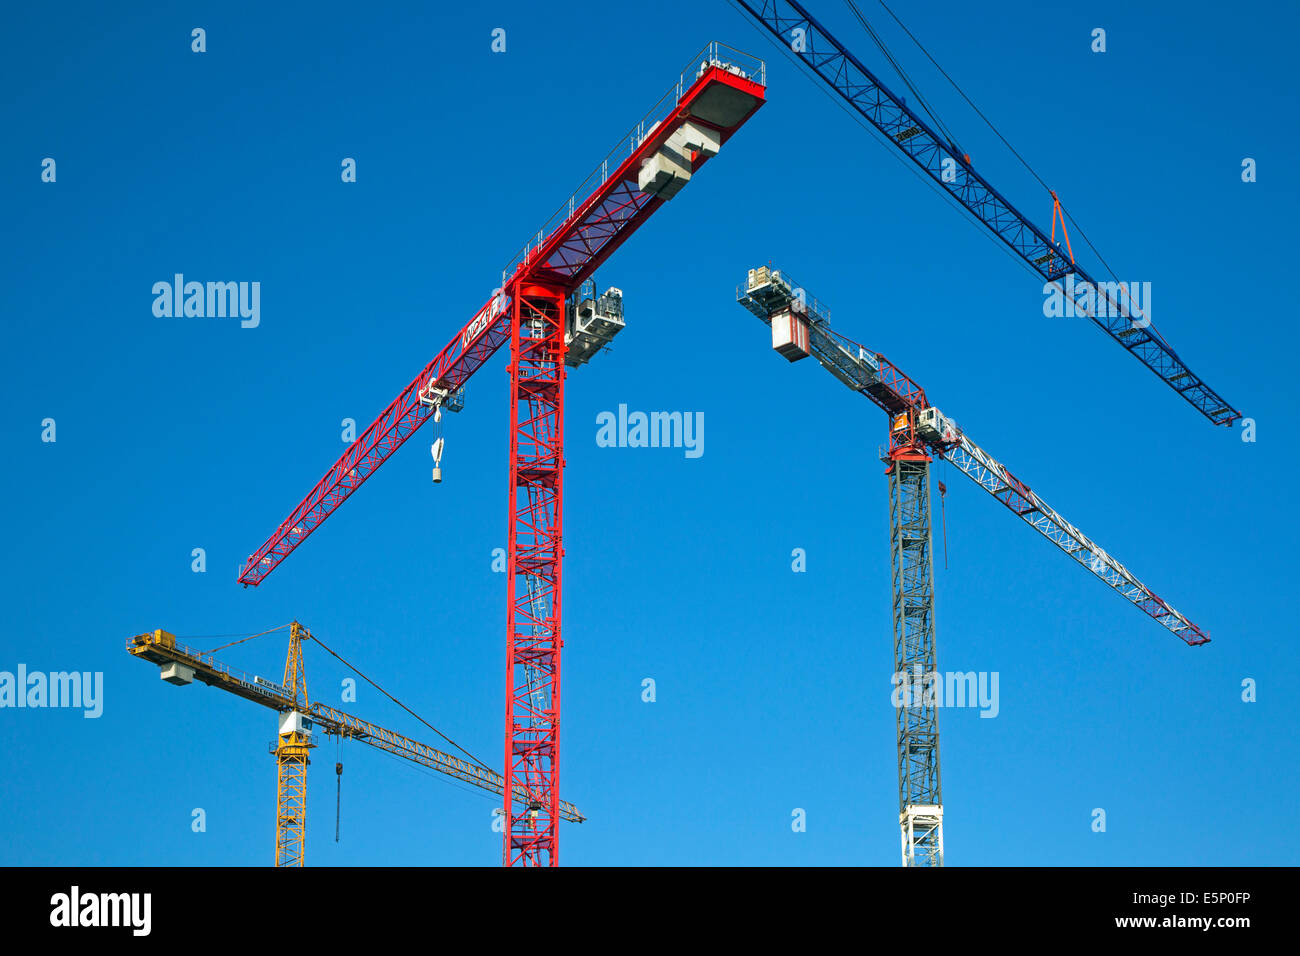 Construction cranes / tower crane against blue sky - Stock Image